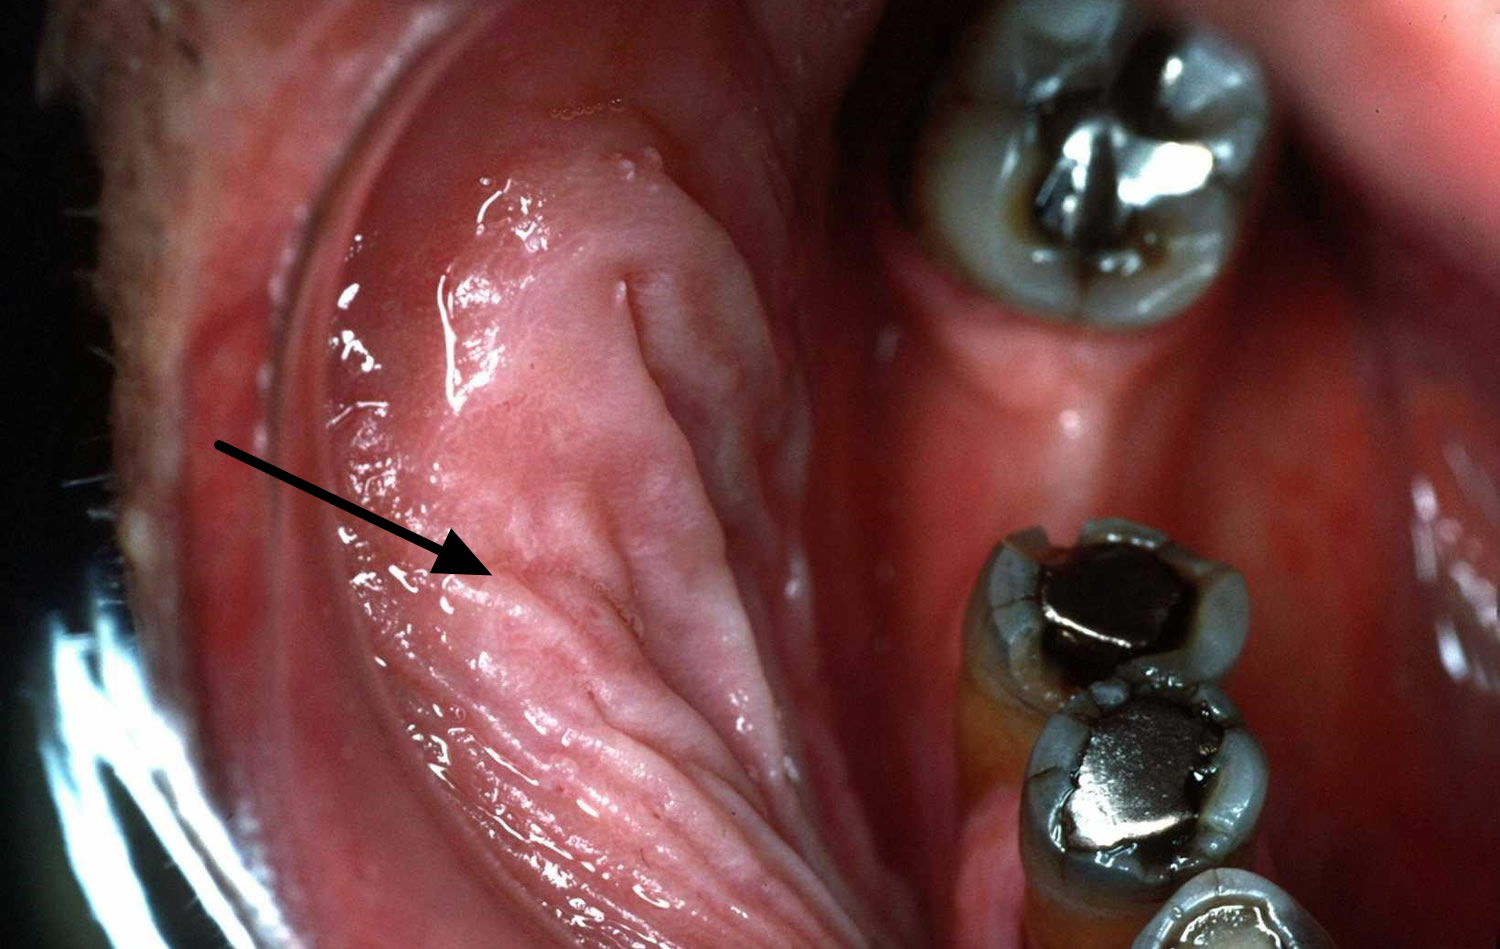 Leukoplakia, Hairy Leukoplakia - Causes, Diagnosis, Treatment